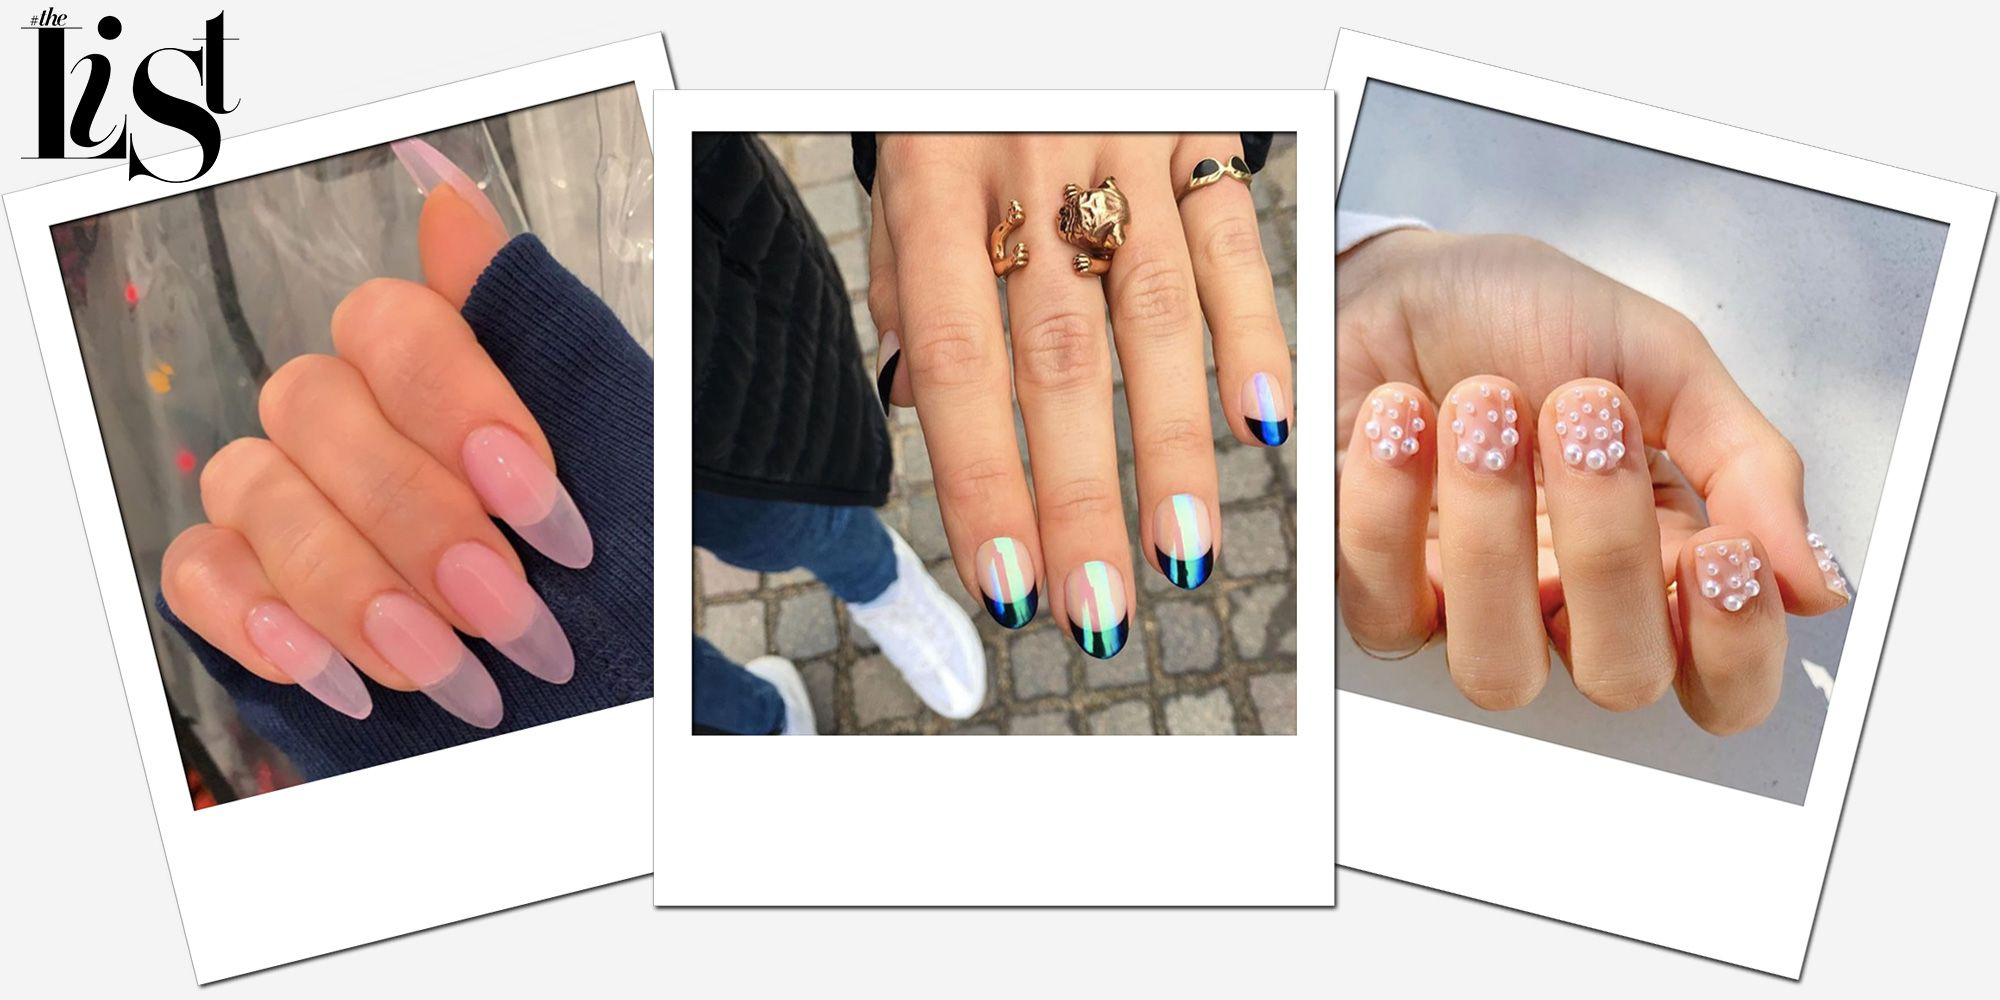 10 Top Nail Trends 2019 The Biggest Nail Art And Manicure Ideas